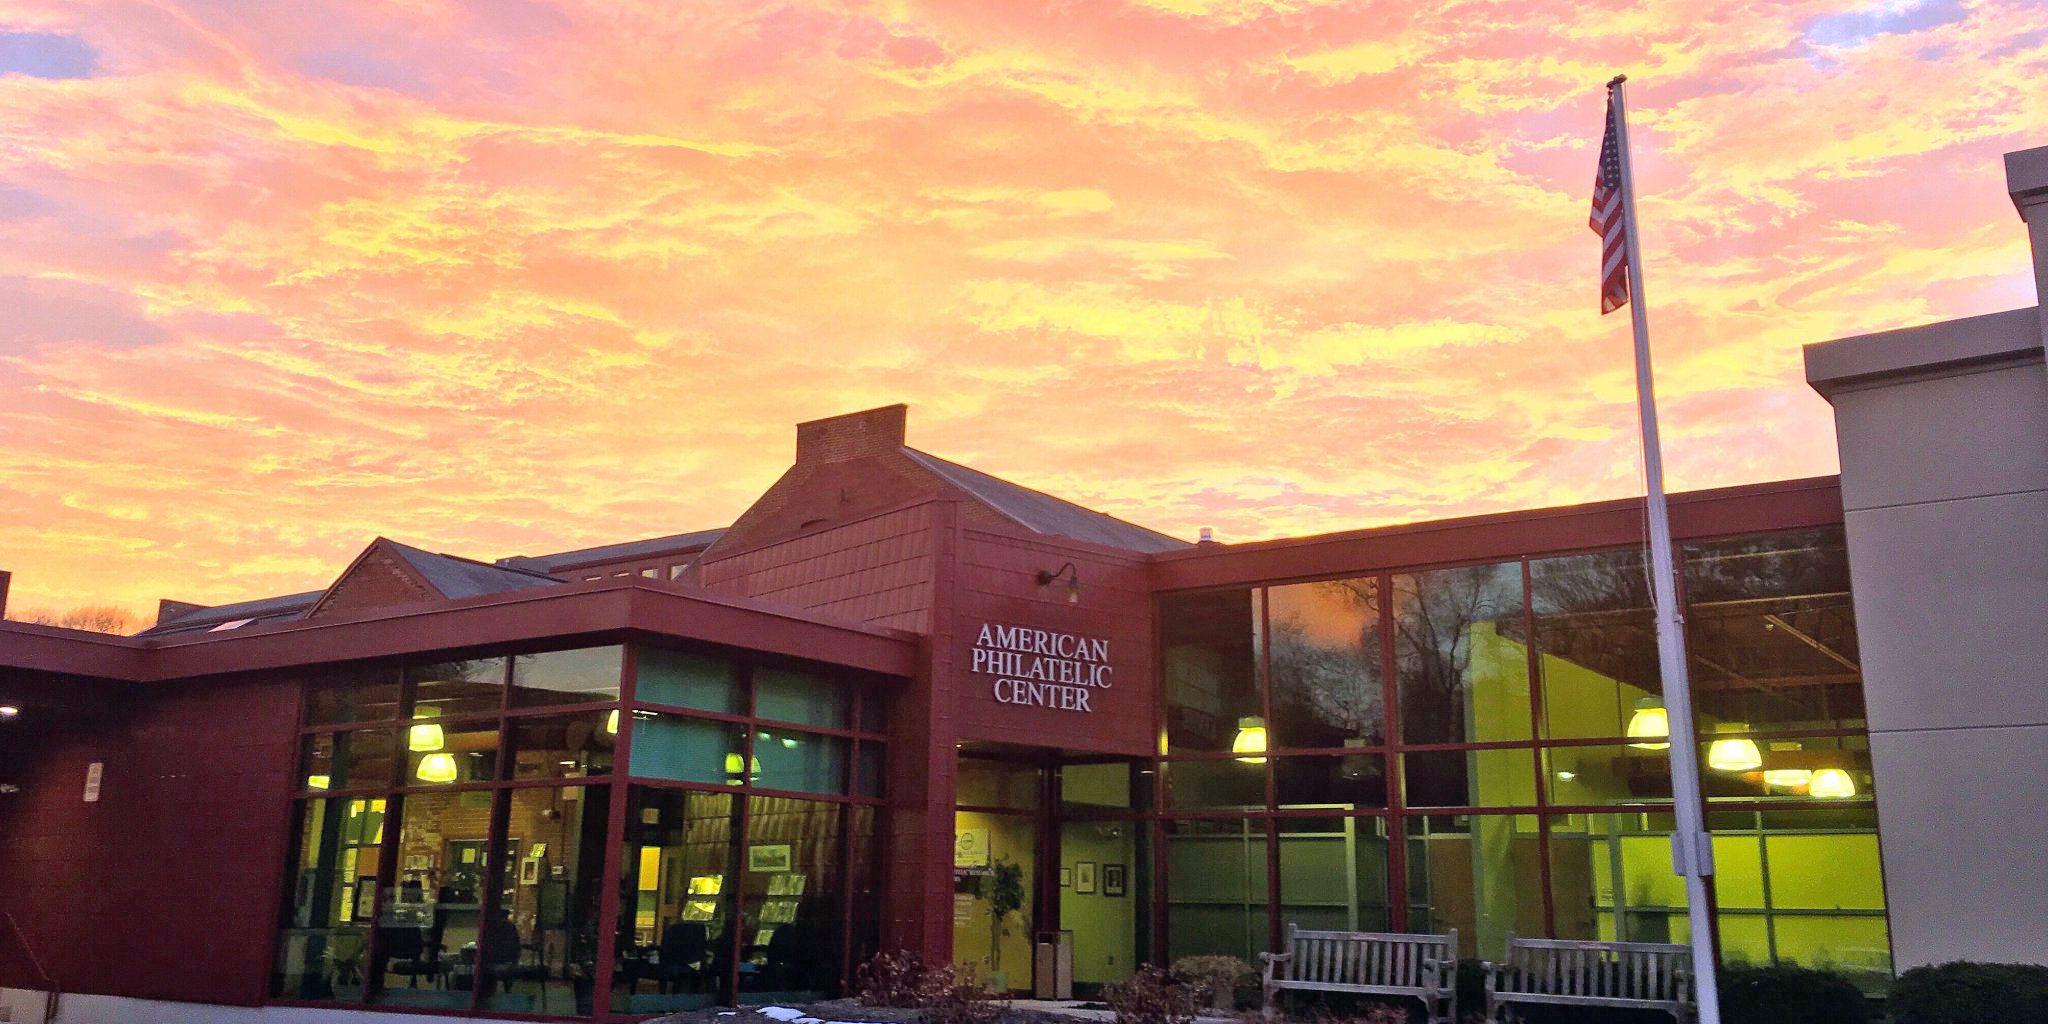 The American Philatelic Center at sunrise